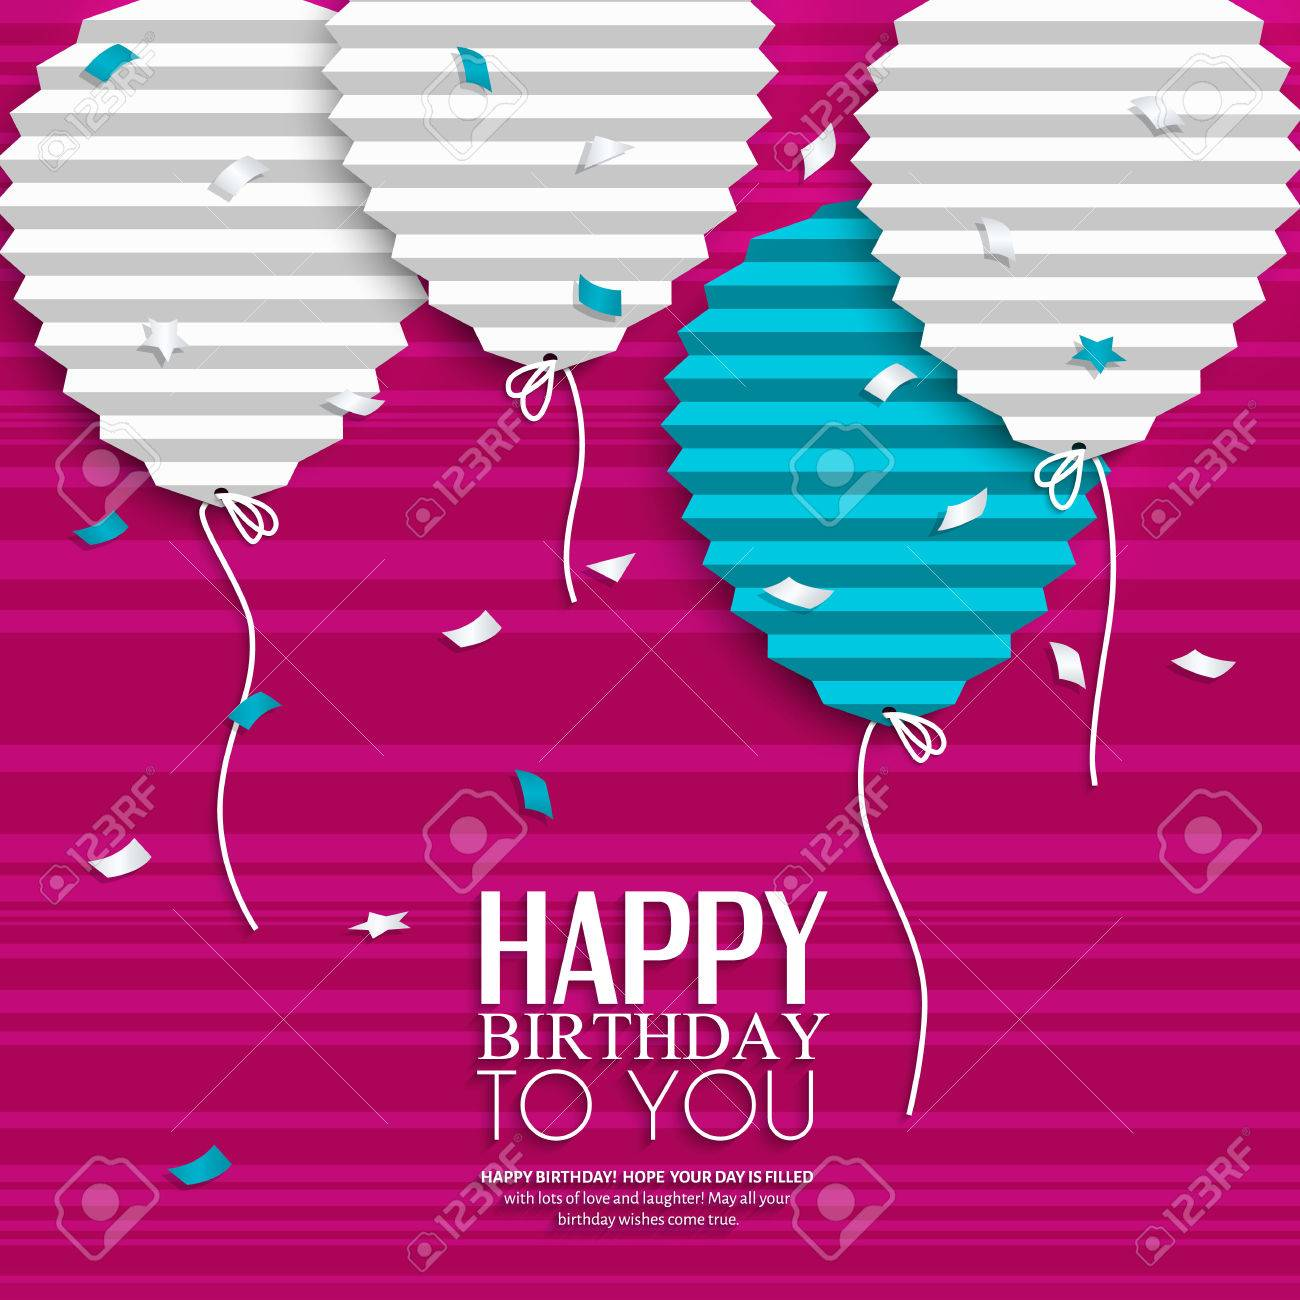 Birthday card with balloons in the style of flat folded paper. - 32387006